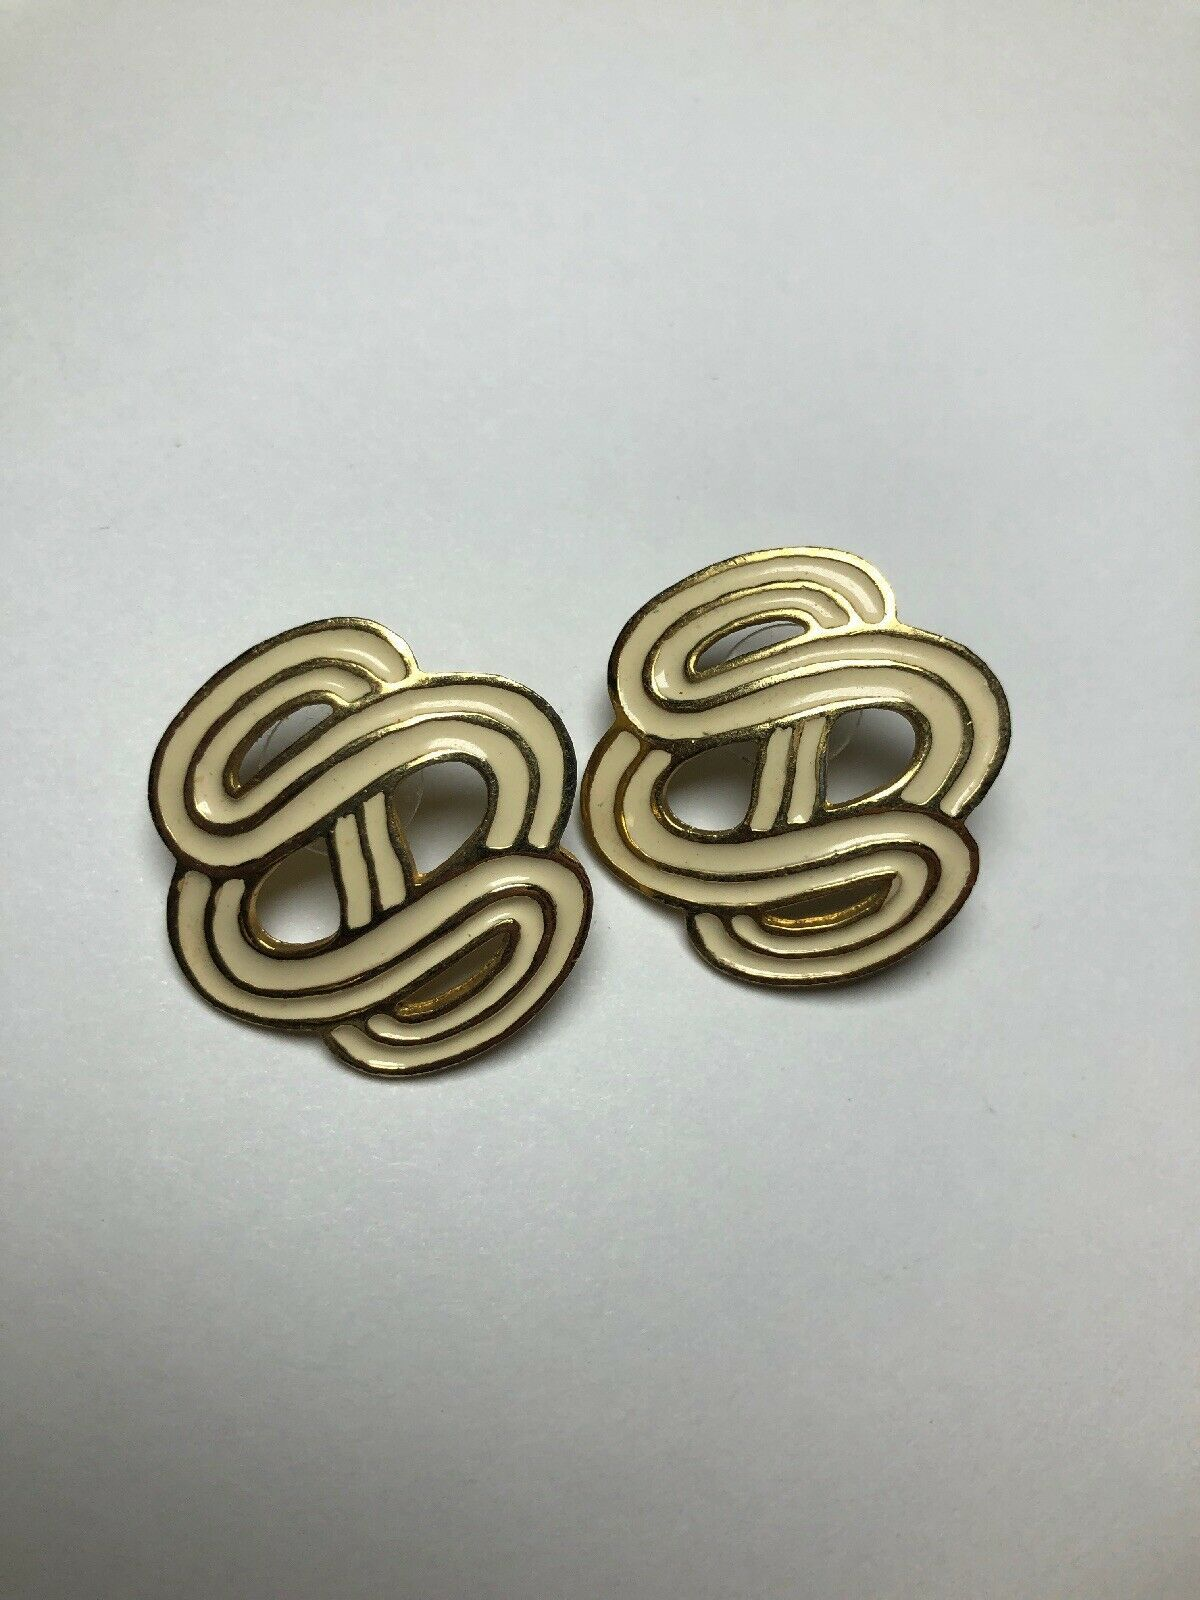 Primary image for Vintage Costume Jewelry Earrings Gold Tone And Cream Infinite S's